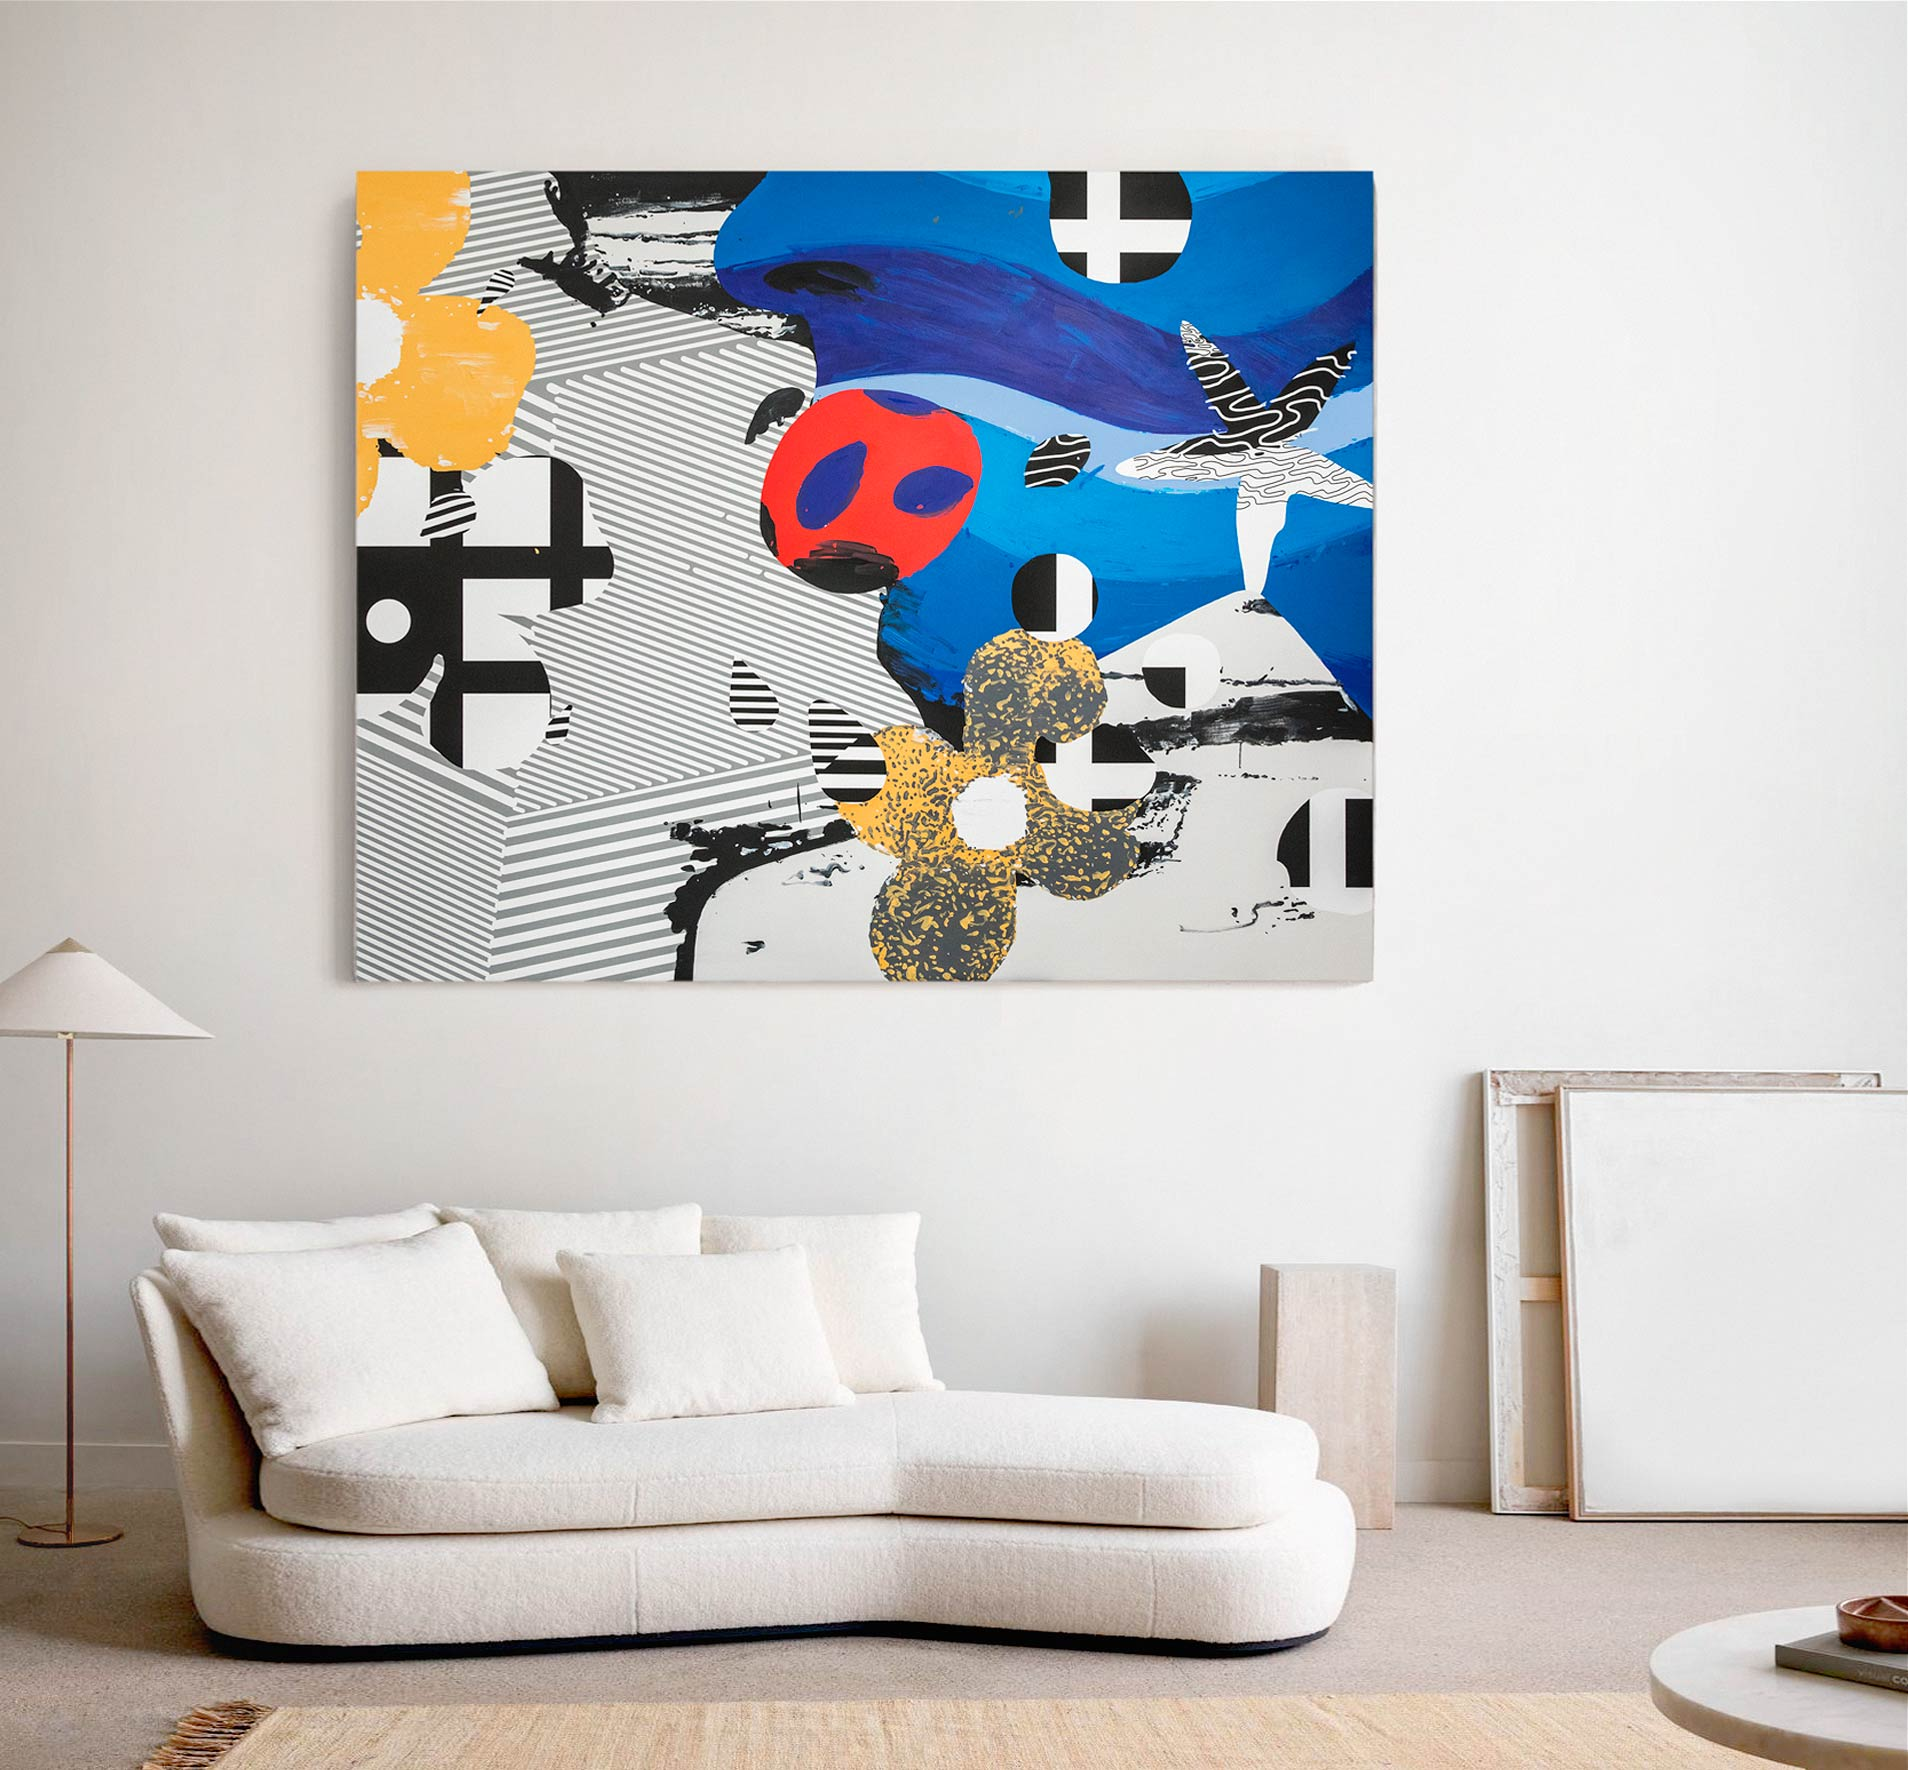 Bright,colourful, canvas abstract painting interior display